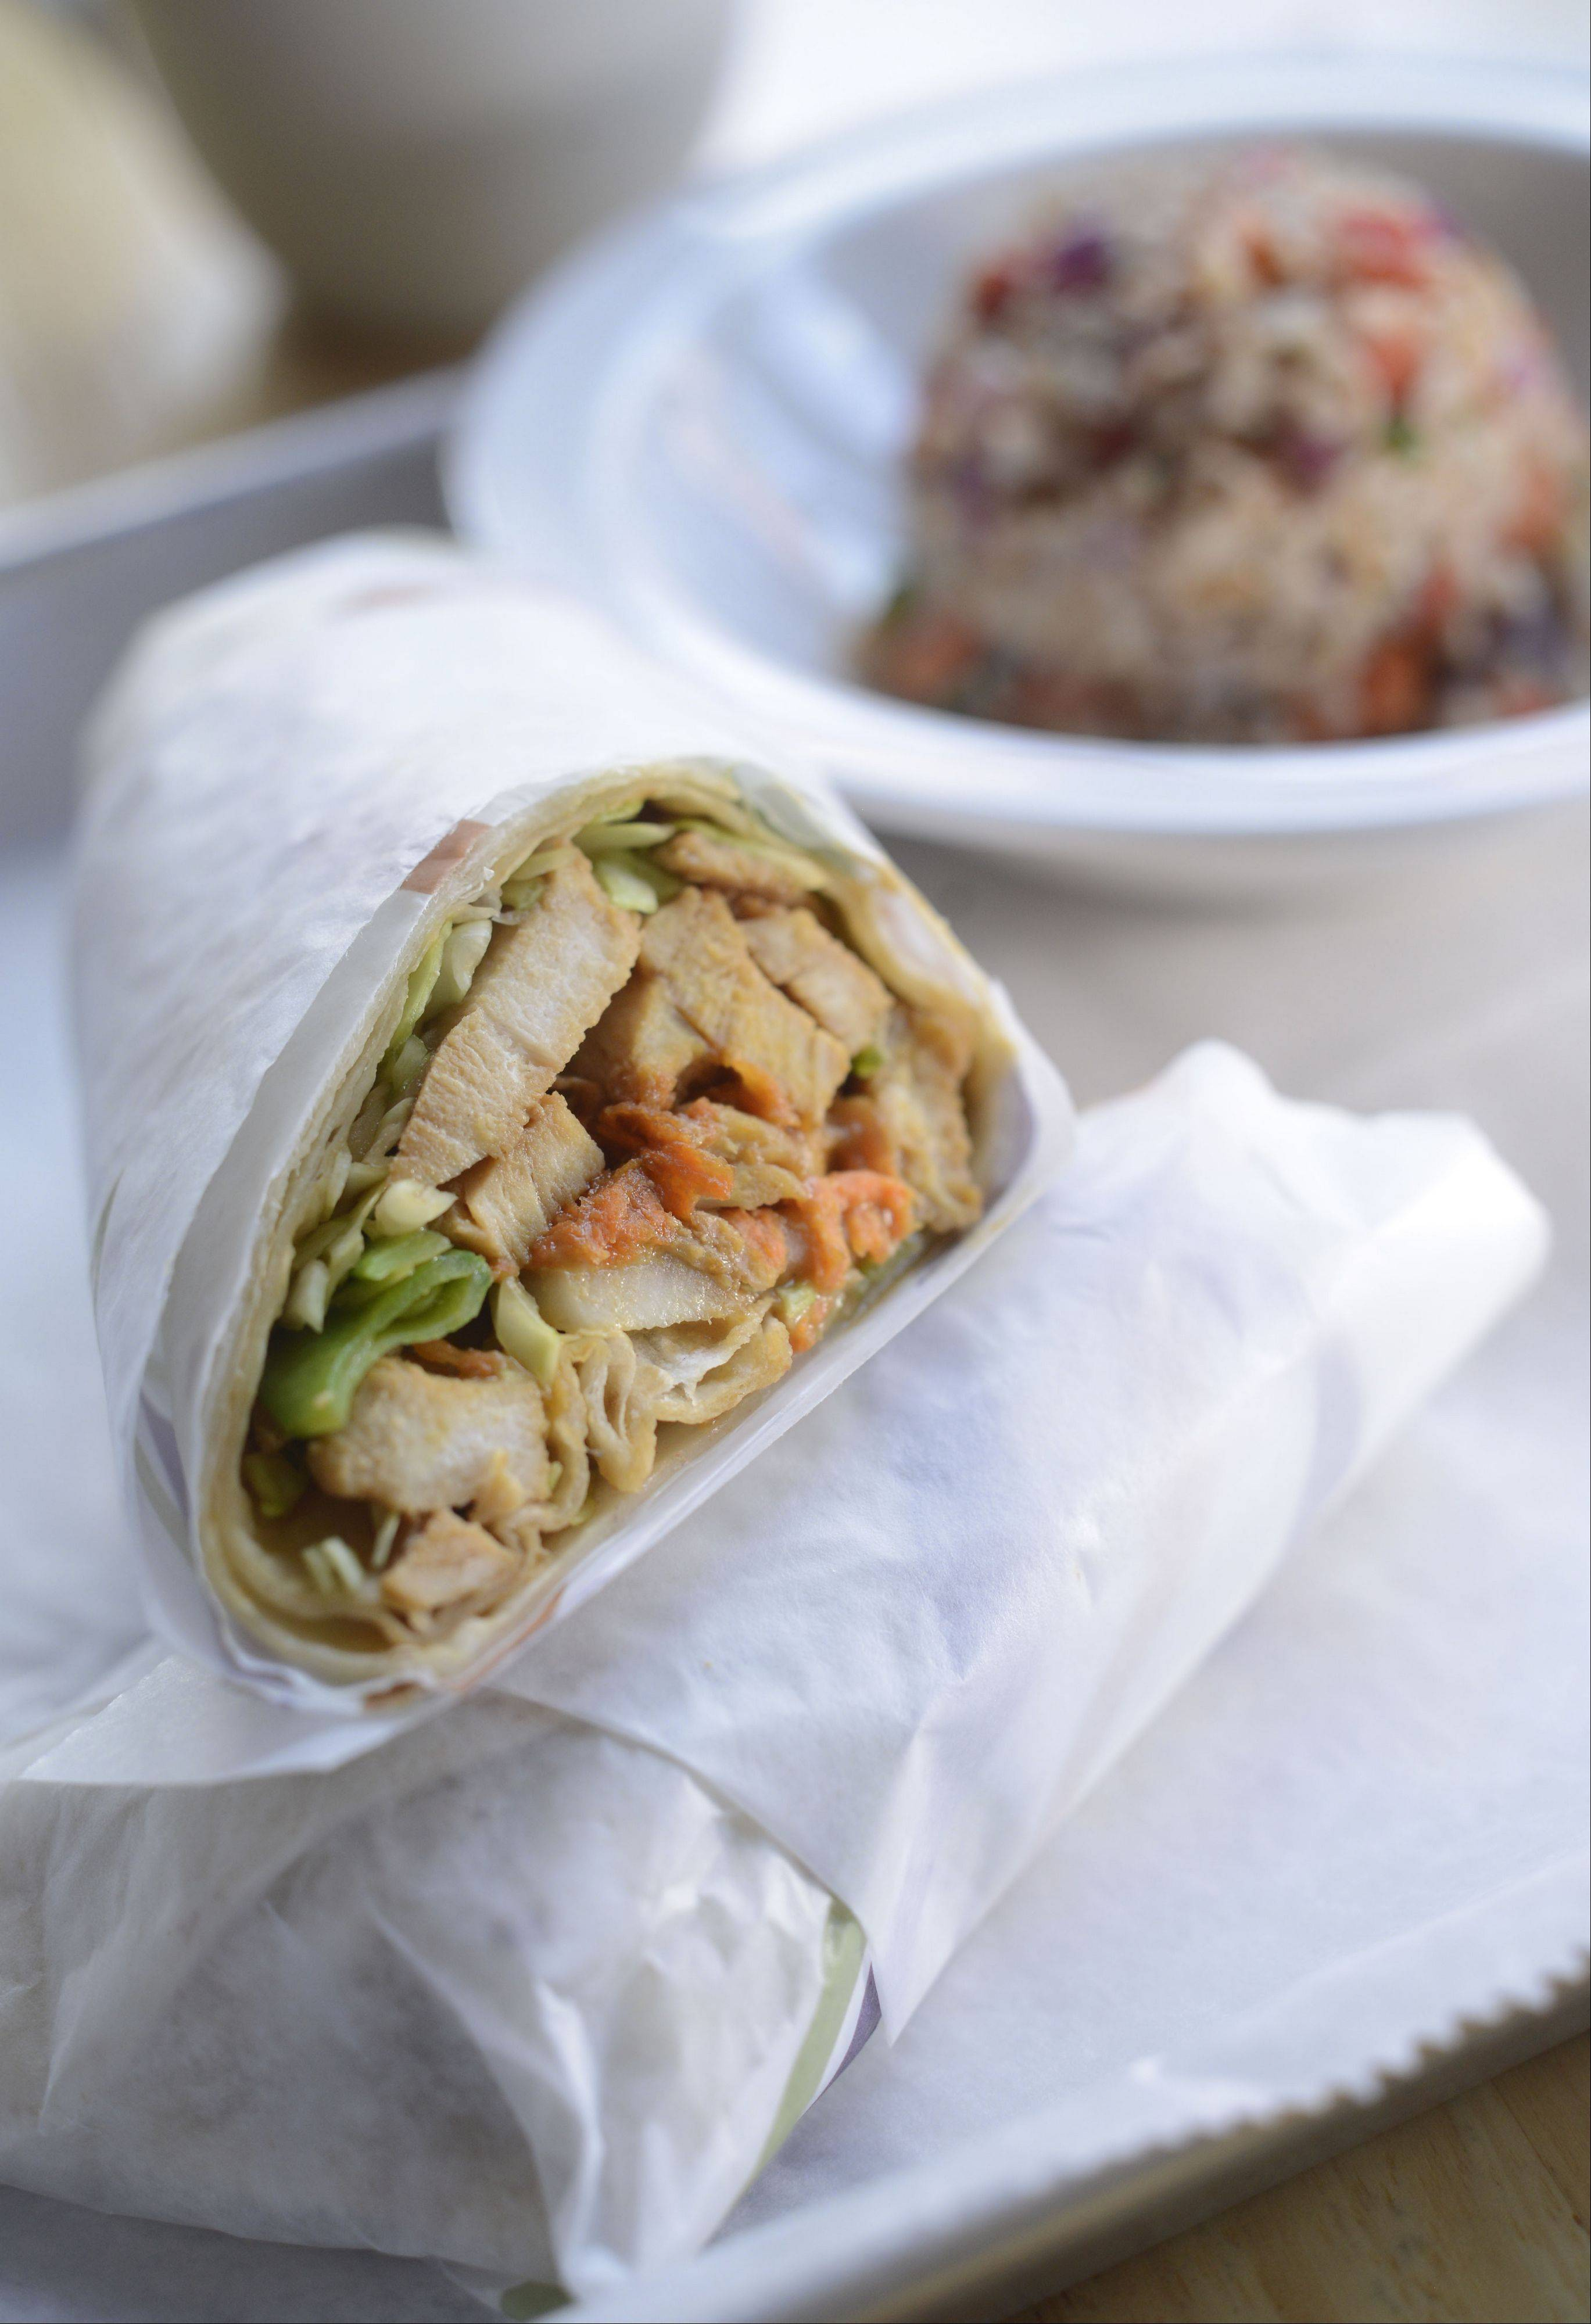 Honey soy glazed chicken breast, greens, baby spinach, pea pods and chow mein noodles make for a flavor-filled wrap at On the Side in Elgin.